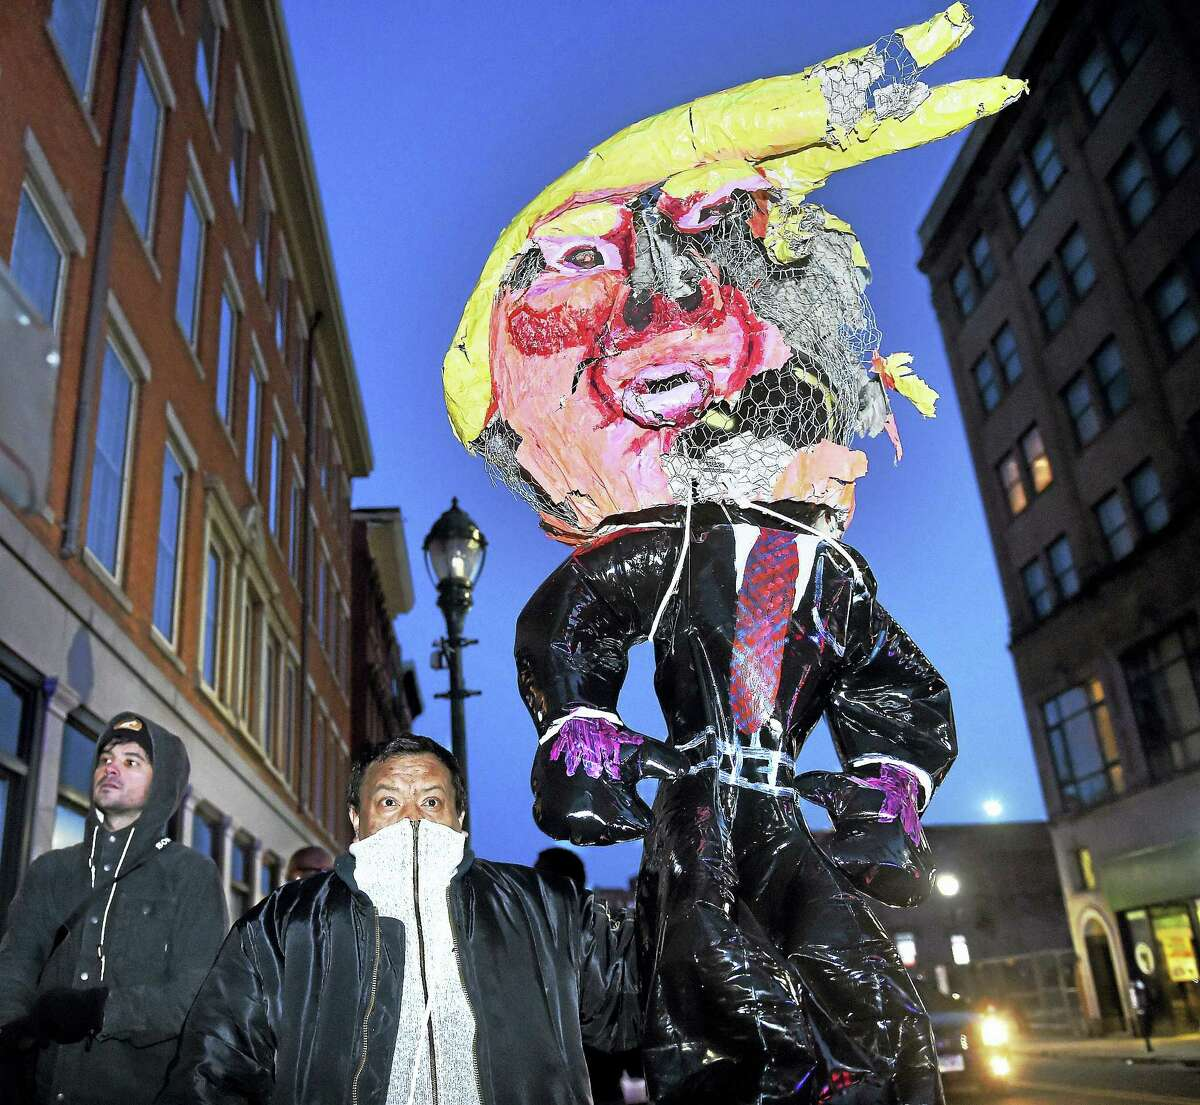 (Arnold Gold-New Haven Register) Edgar Sandoval of New Haven carries an effigy of President Donald Trump during a protest against federal immigration policy on Church St. in New Haven on 2/4/2017. The protest temporarily closed Rt. 34 earlier.